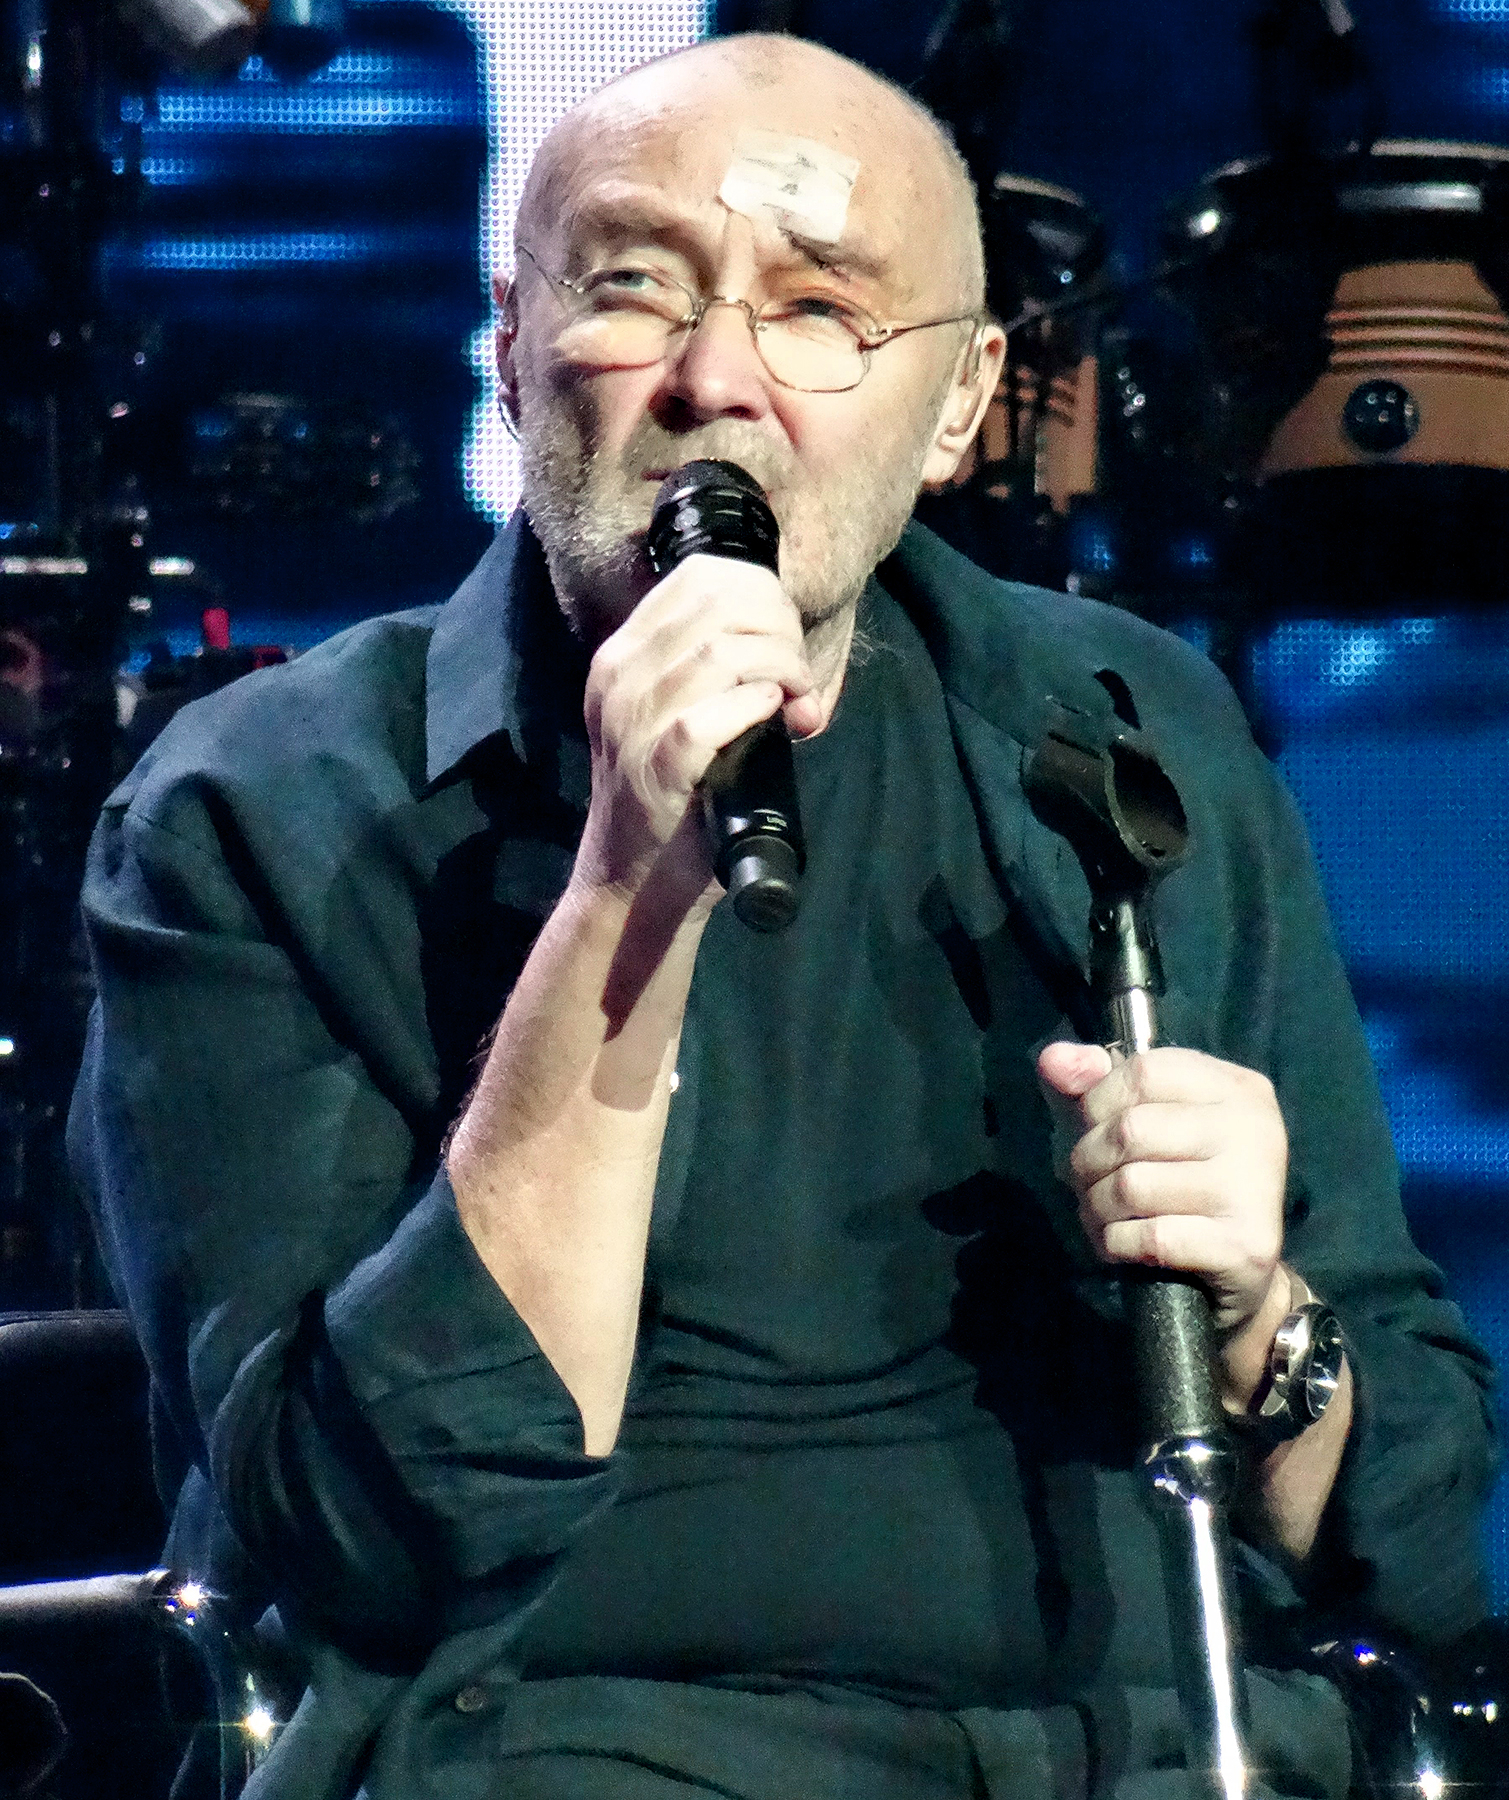 Phil Collins in concert at Lanxess Arena, Cologne, Germany on June 11, 2017.